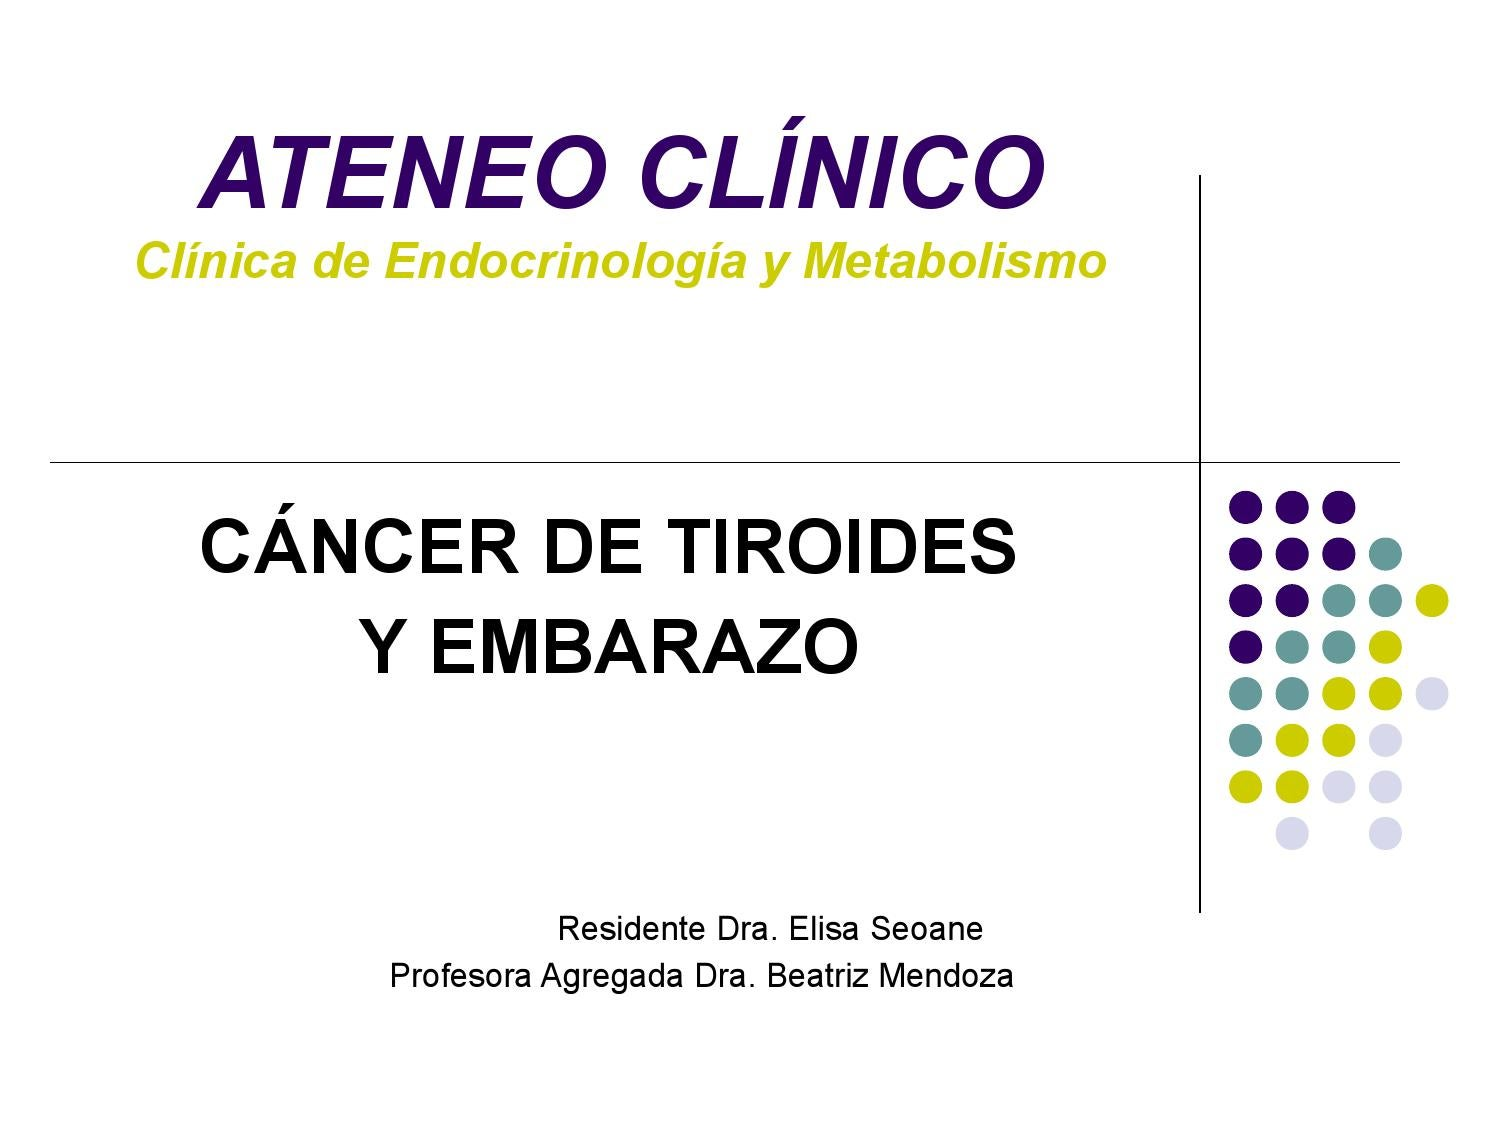 cancer tiroideo y embarazo